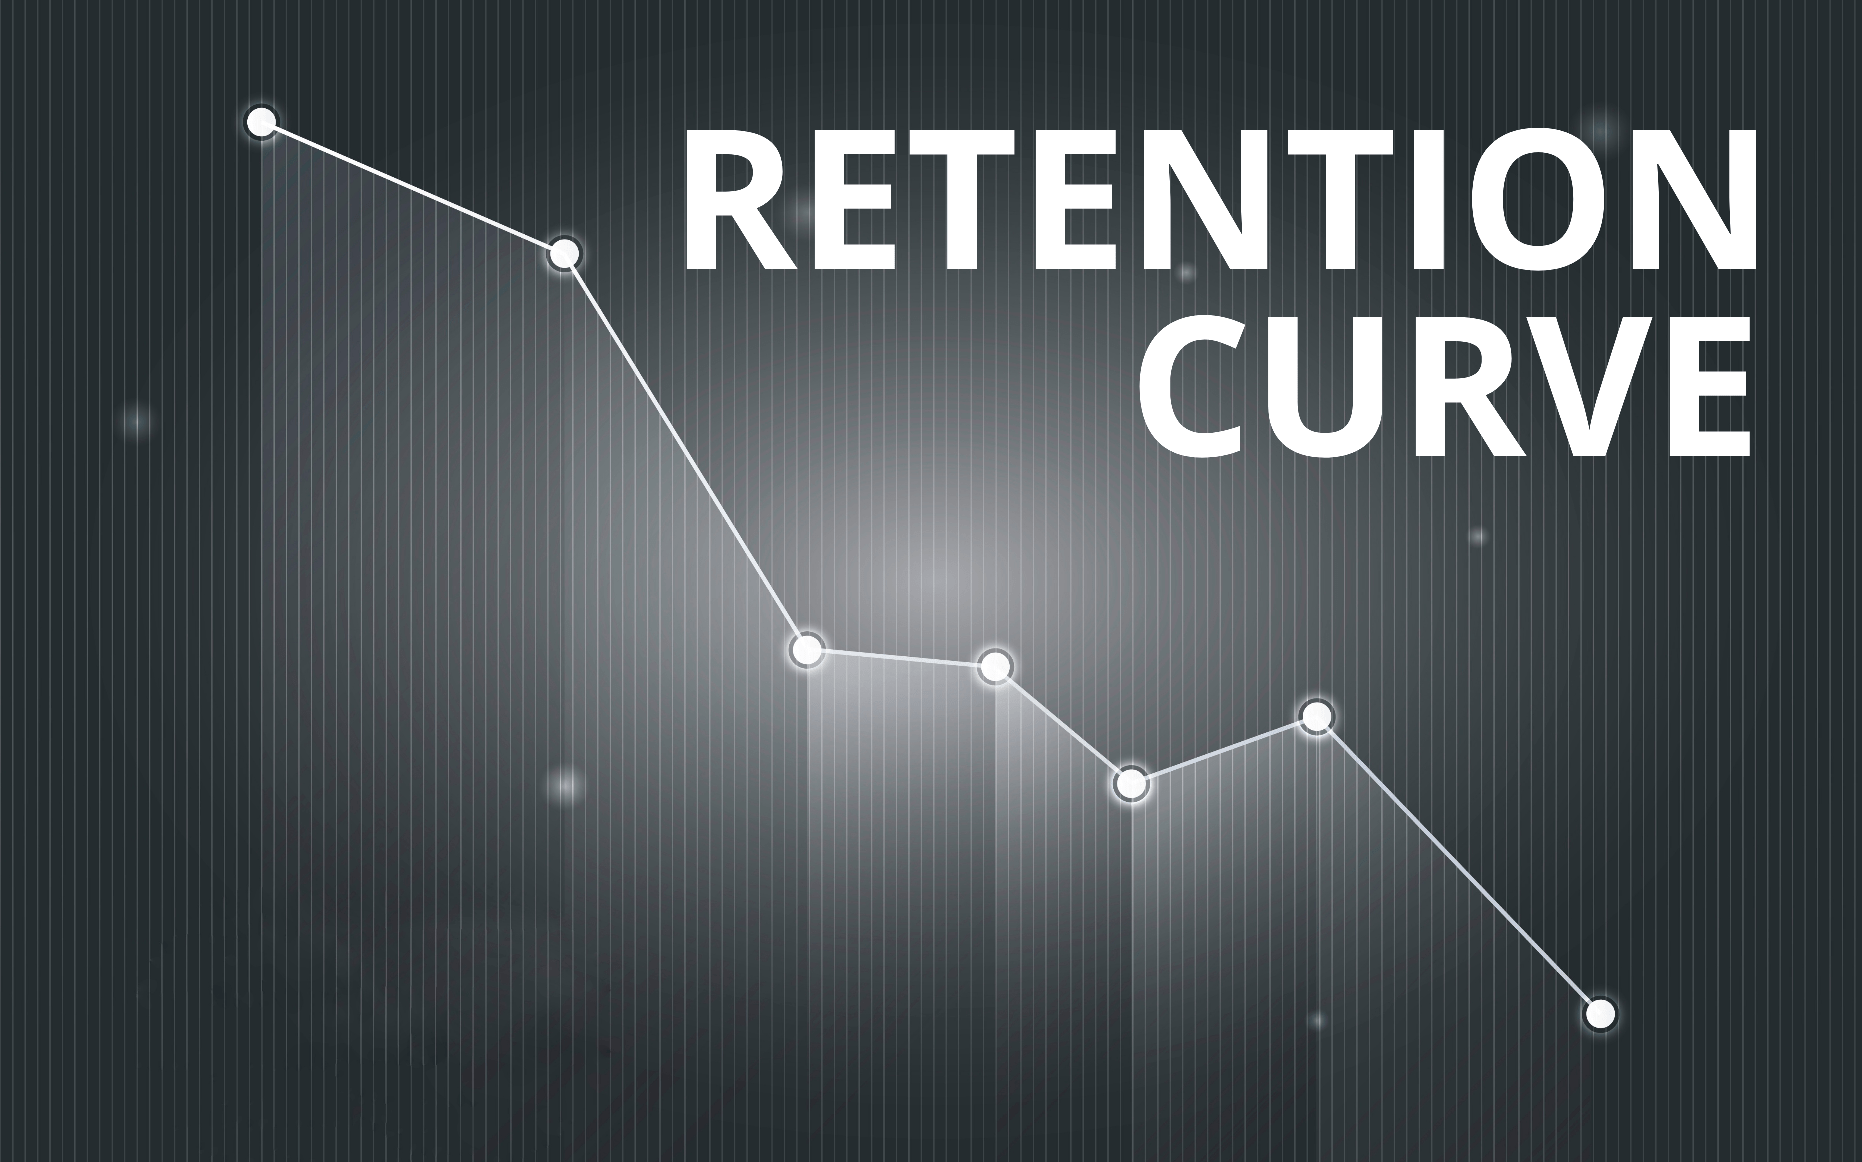 Retention Curve, Cohort Retention Curve, Retention Graph, Customer Retention Curve